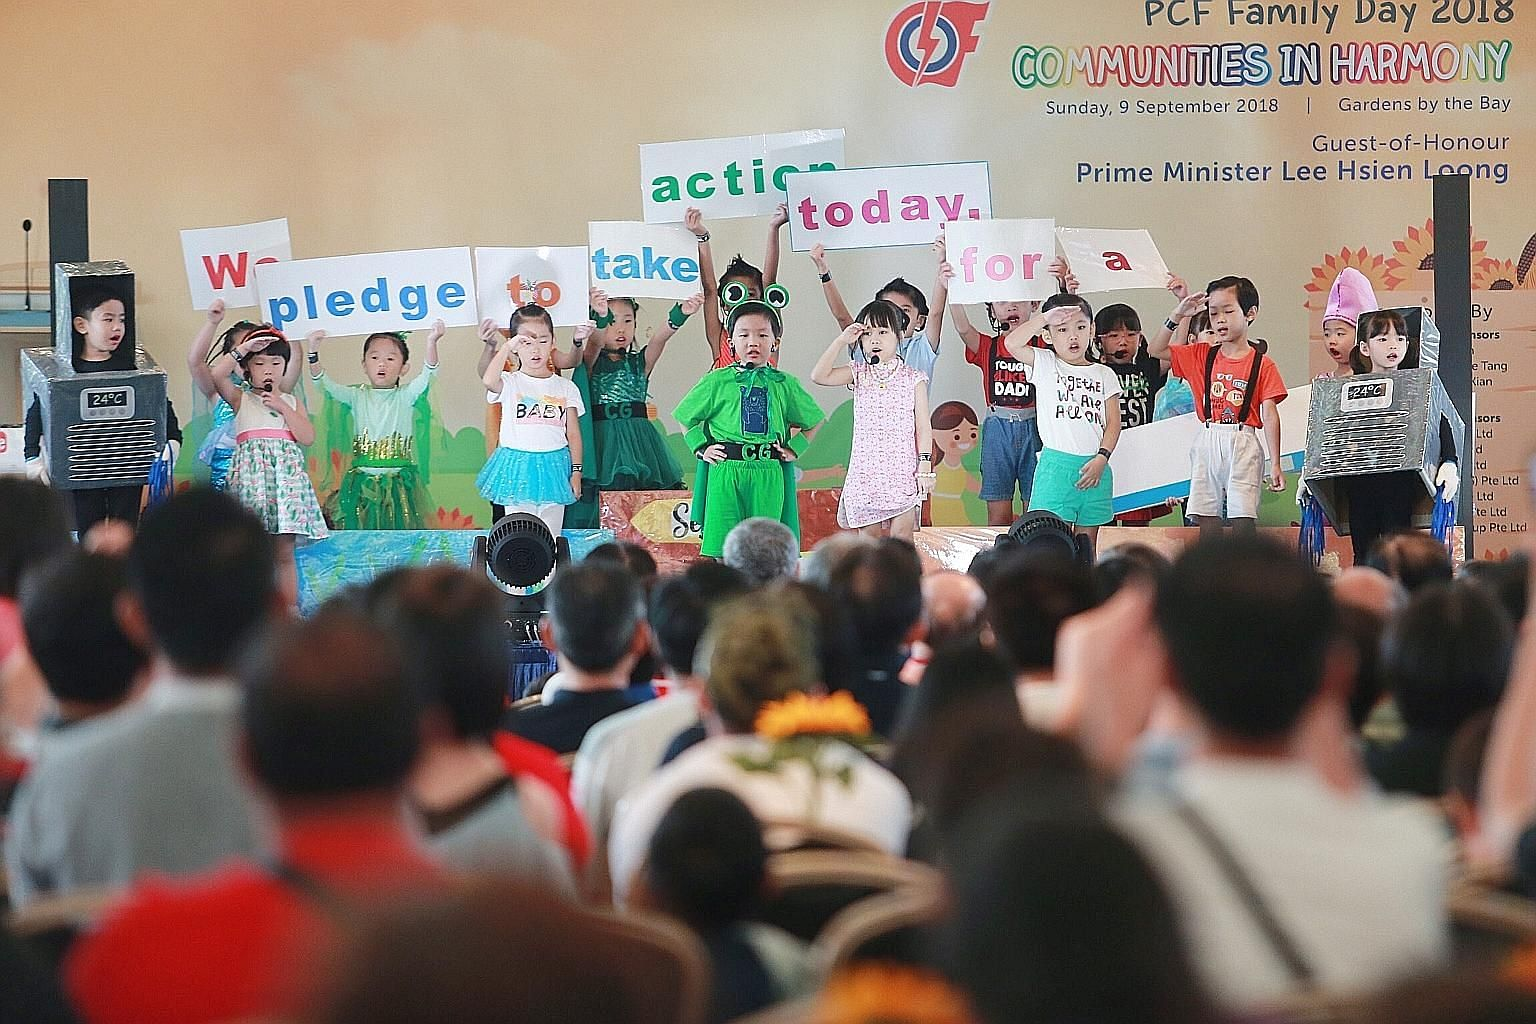 Children performing at the PAP Community Foundation (PCF) Family Day yesterday. Prime Minister Lee Hsien Loong said that providing affordable and high-quality pre-school education is an important way that the Government and the PCF are helping young